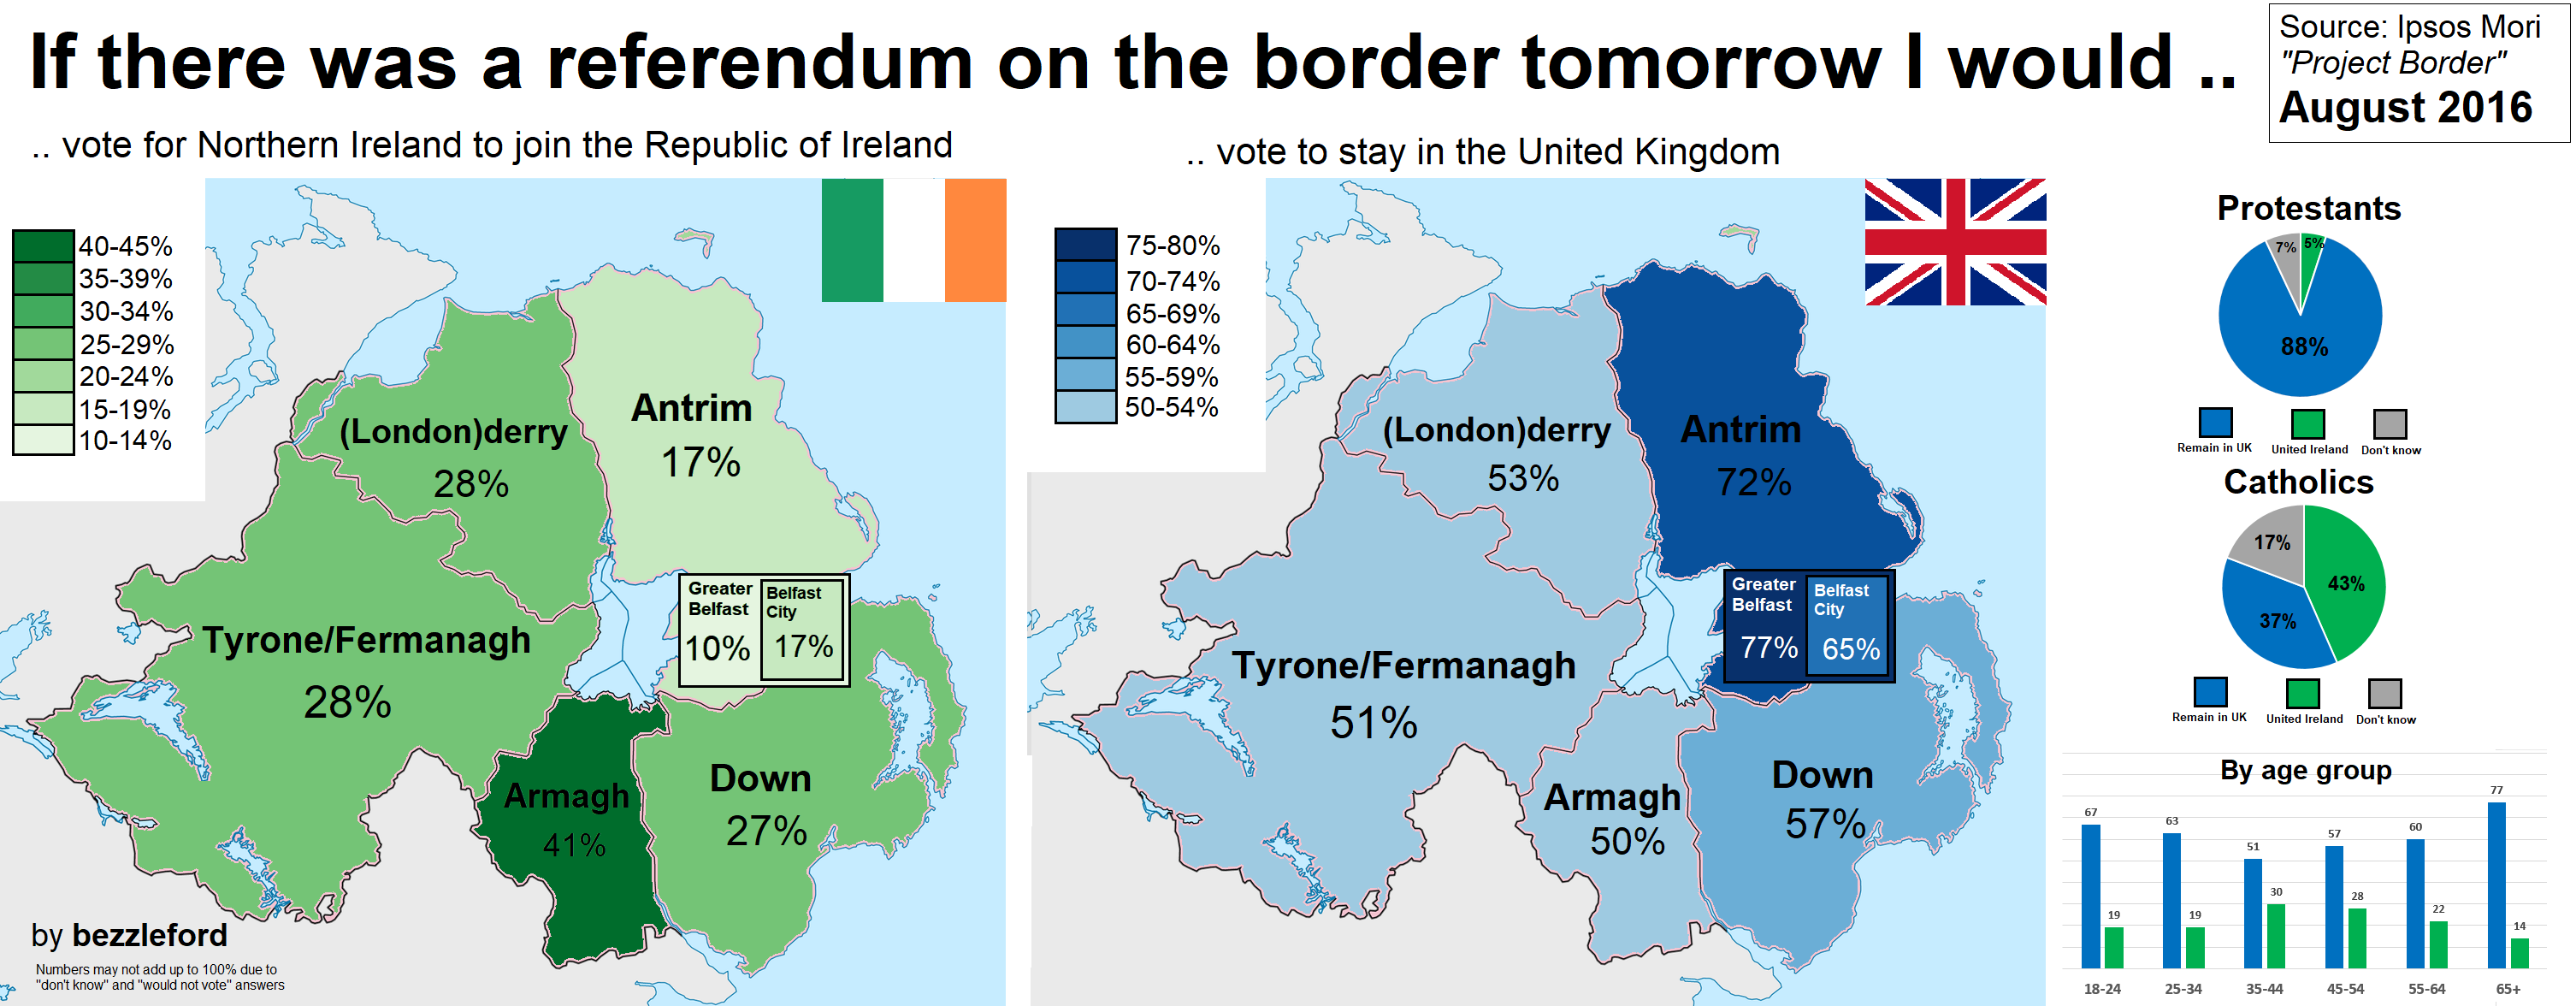 Republic Of Ireland And Northern Ireland Map.If There Was A Referendum On The Northern Ireland Border Vivid Maps